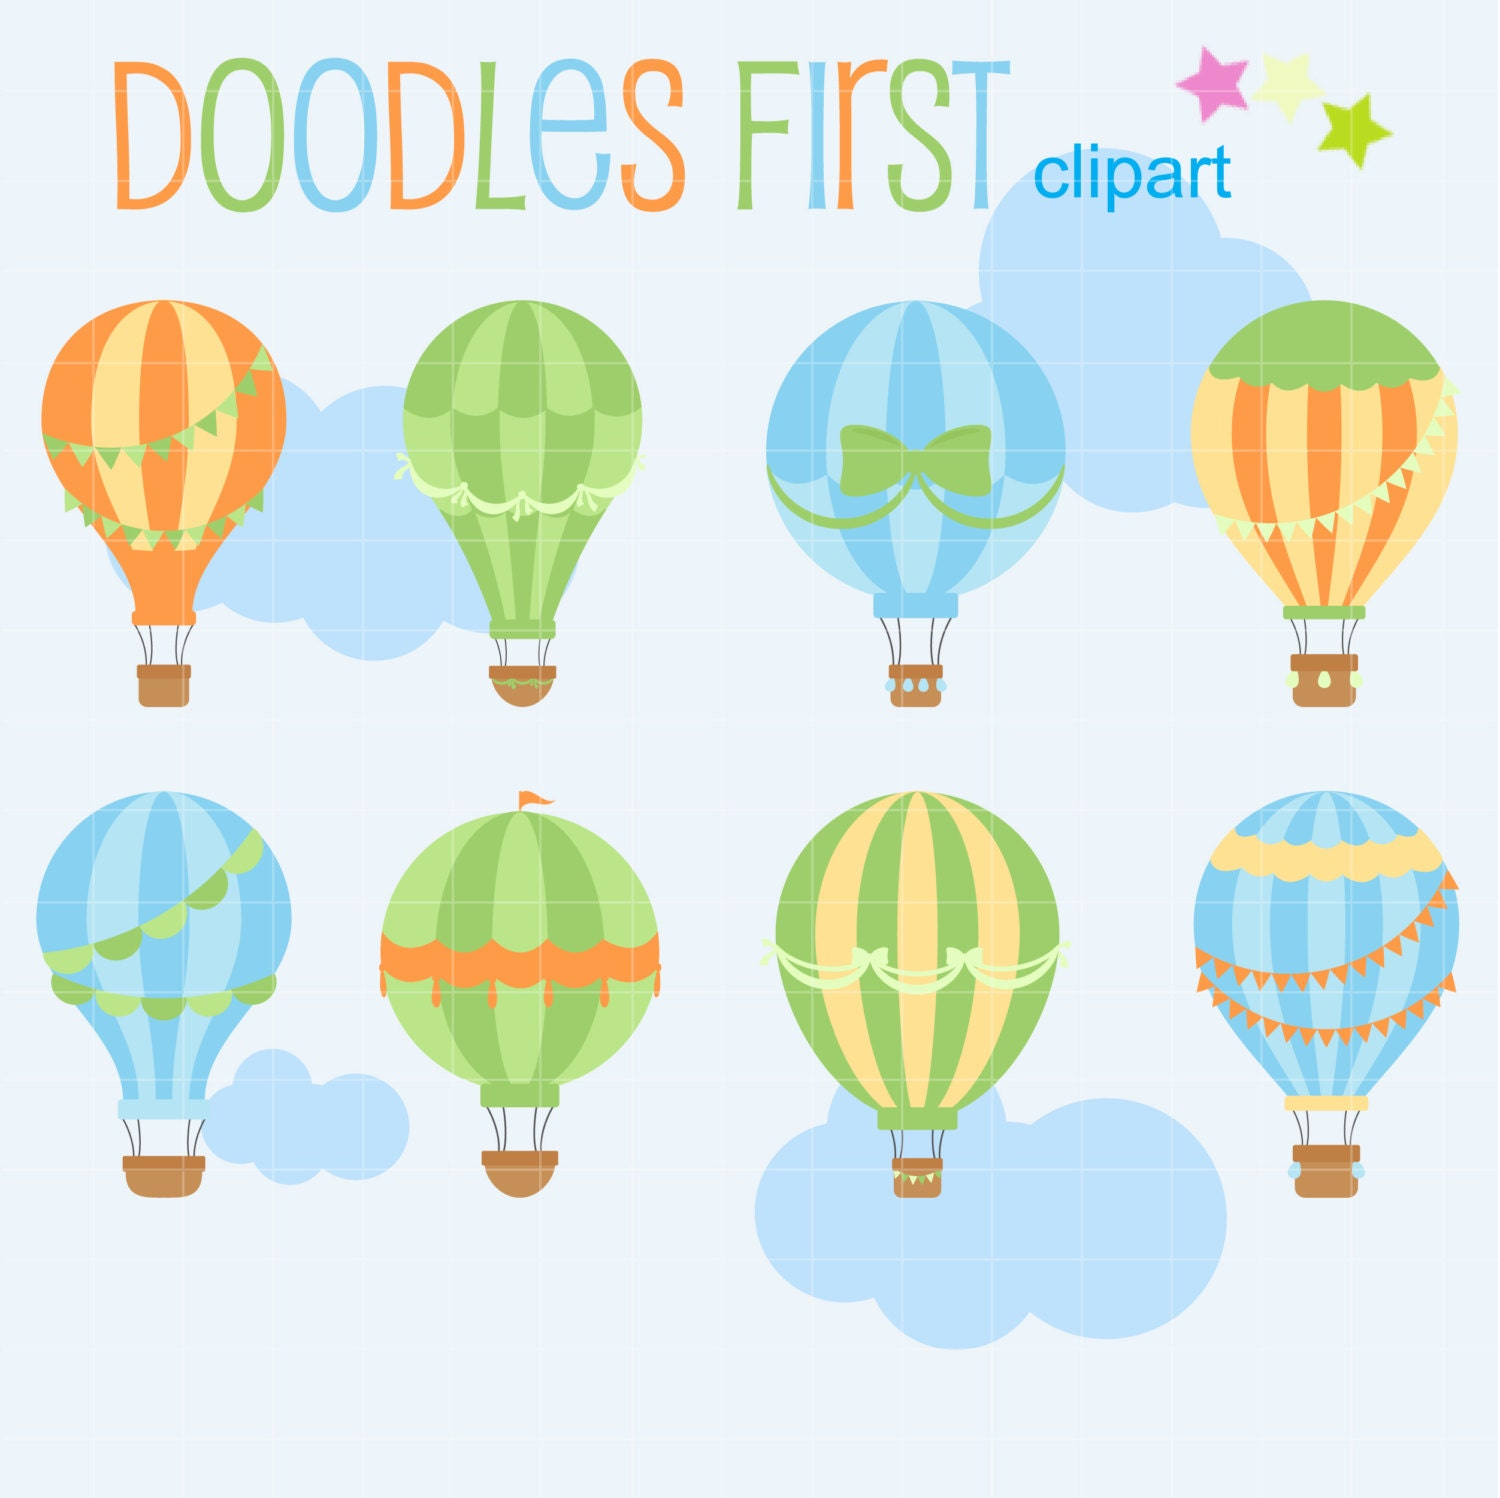 Hot air balloons digital clip art for scrapbooking card making hot air balloons digital clip art for scrapbooking card making cupcake toppers paper crafts jeuxipadfo Gallery